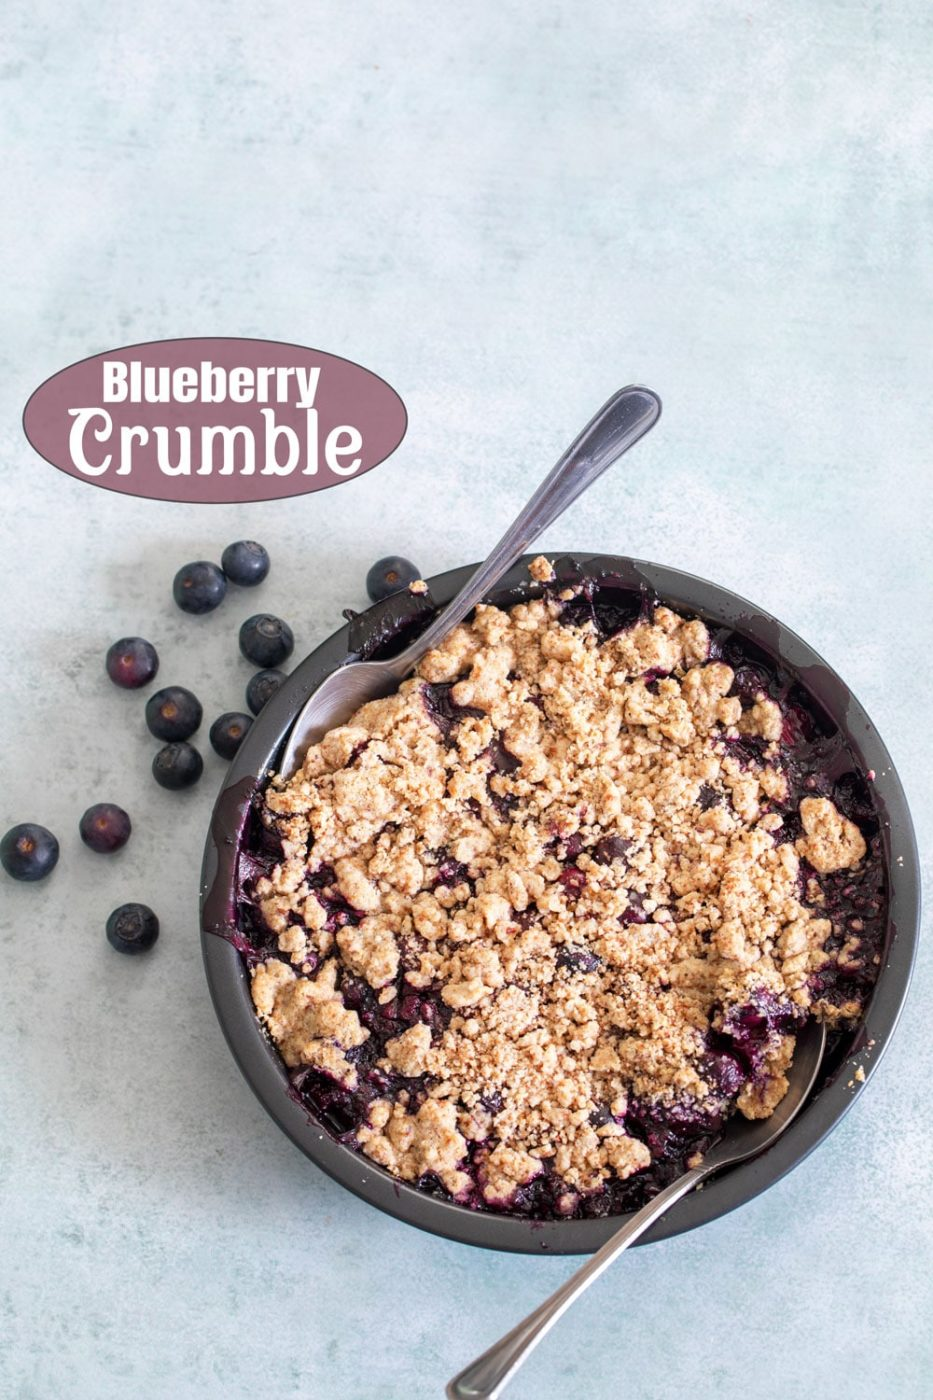 overhead view of the pie crumble in a pan with a spoon in it. On the side, there are fresh berries.